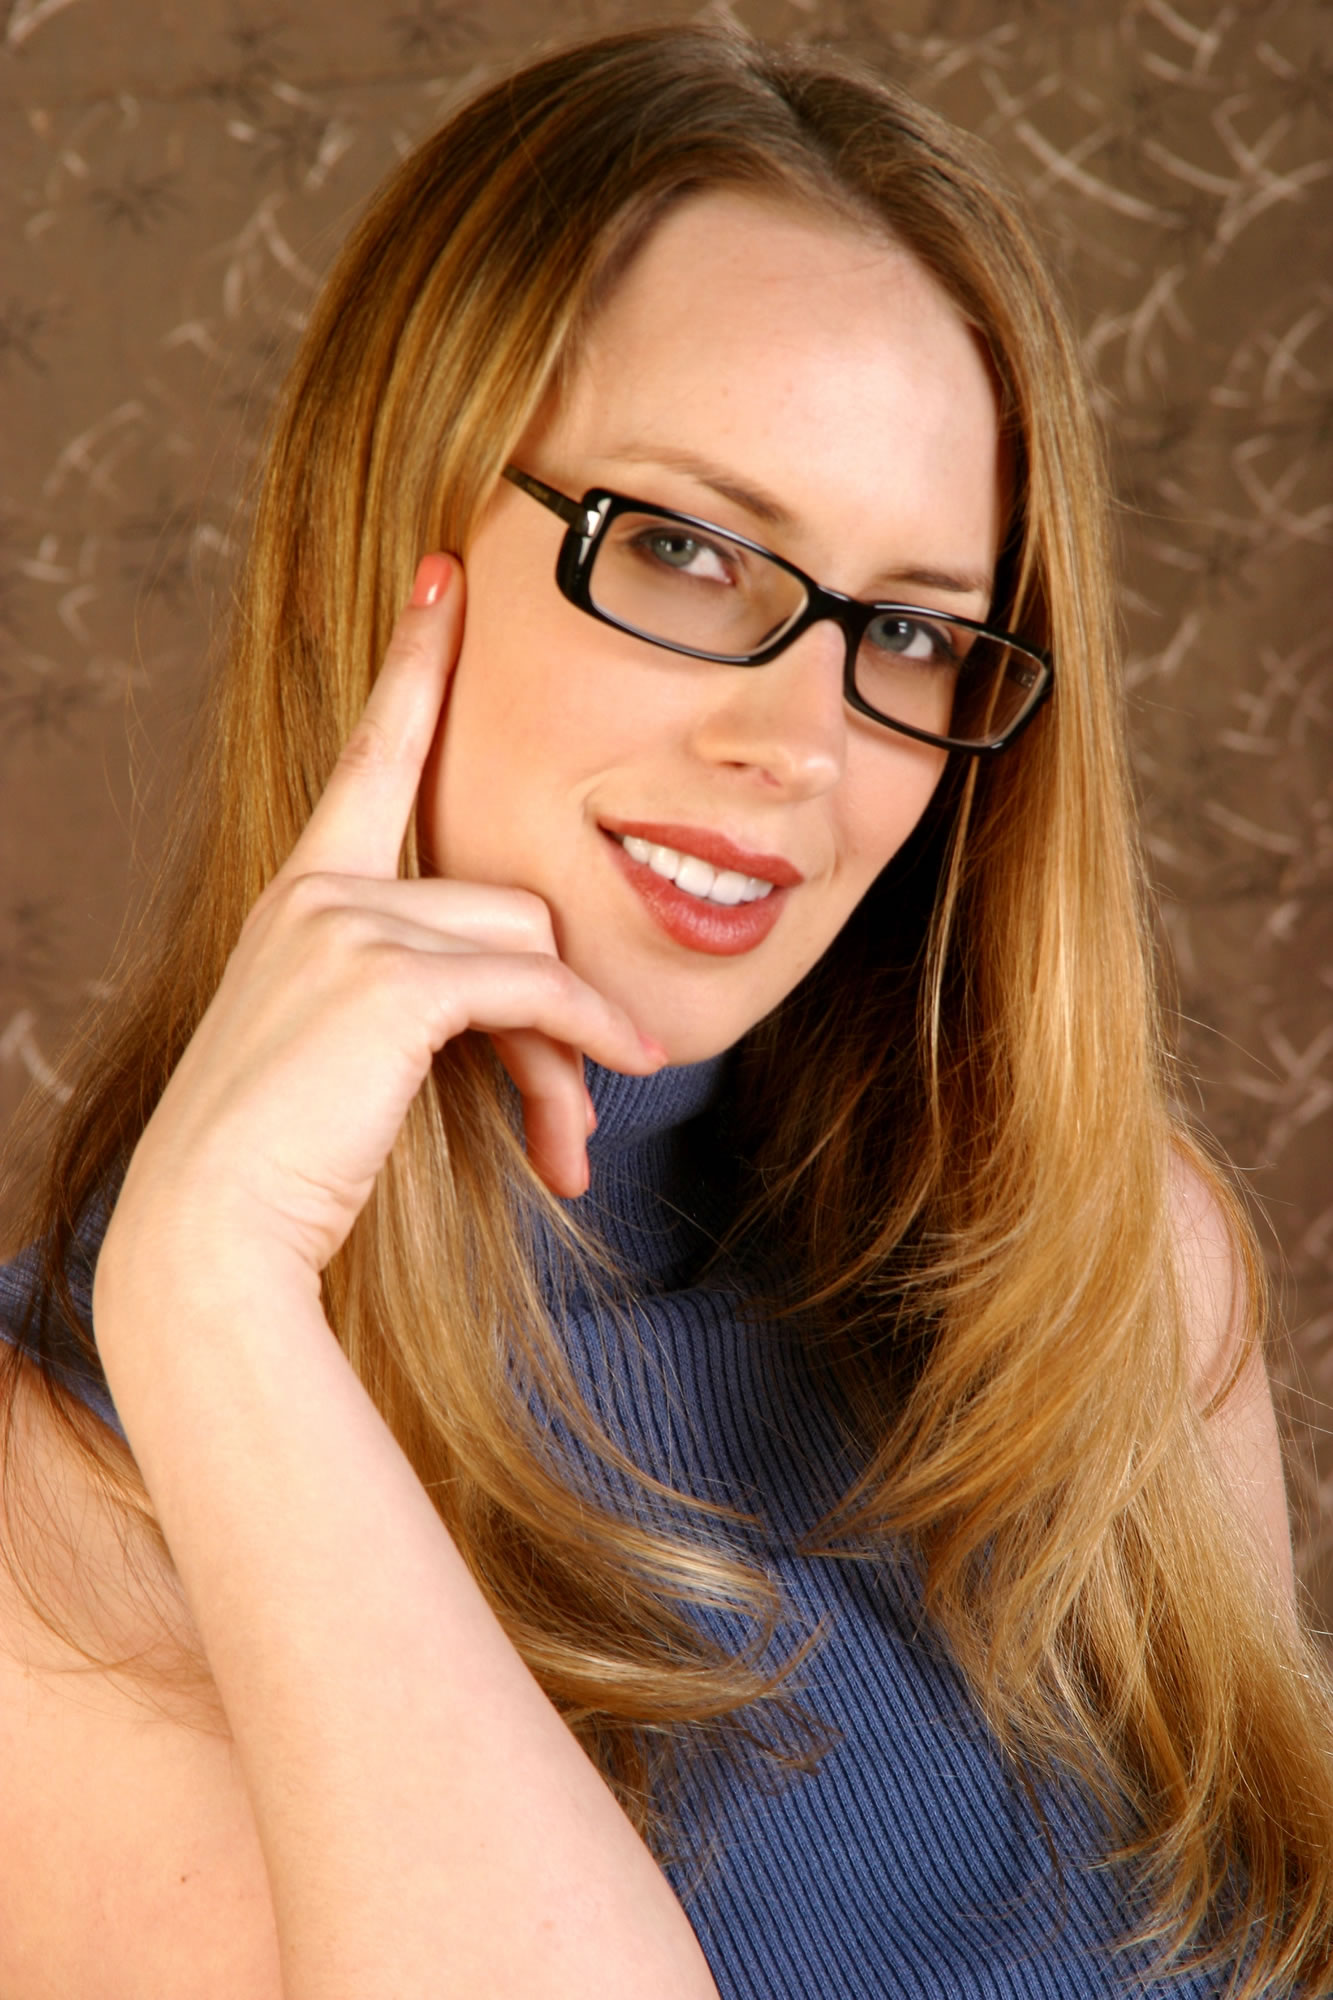 Milf With Big Tits Wearing Glasses